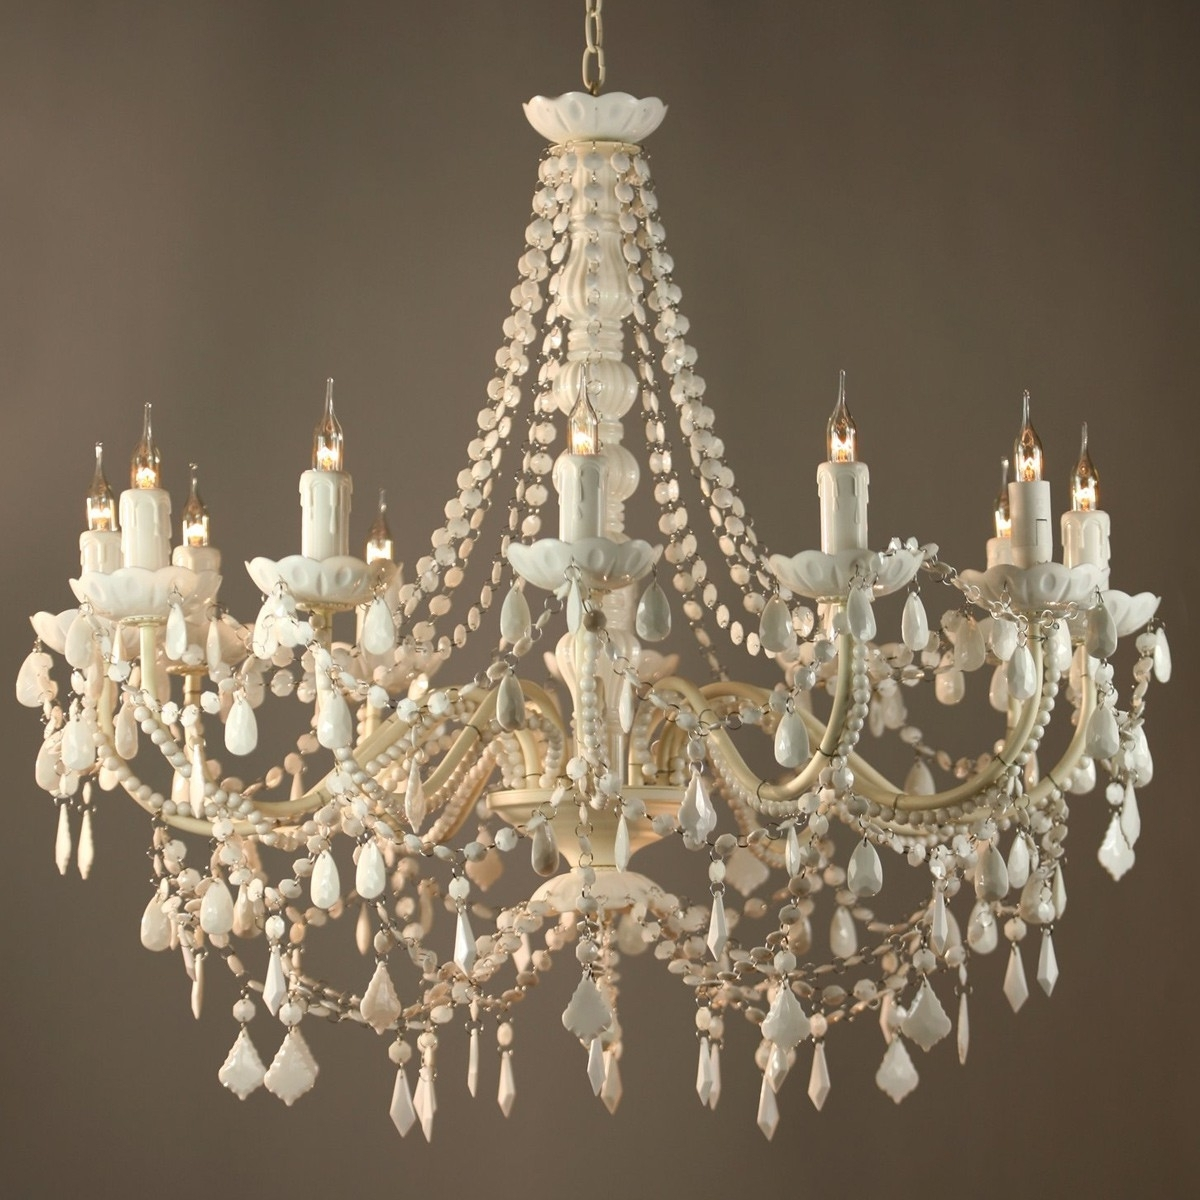 Current Antique Chandeliers For Your House Regarding Antique Looking Chandeliers (View 3 of 20)